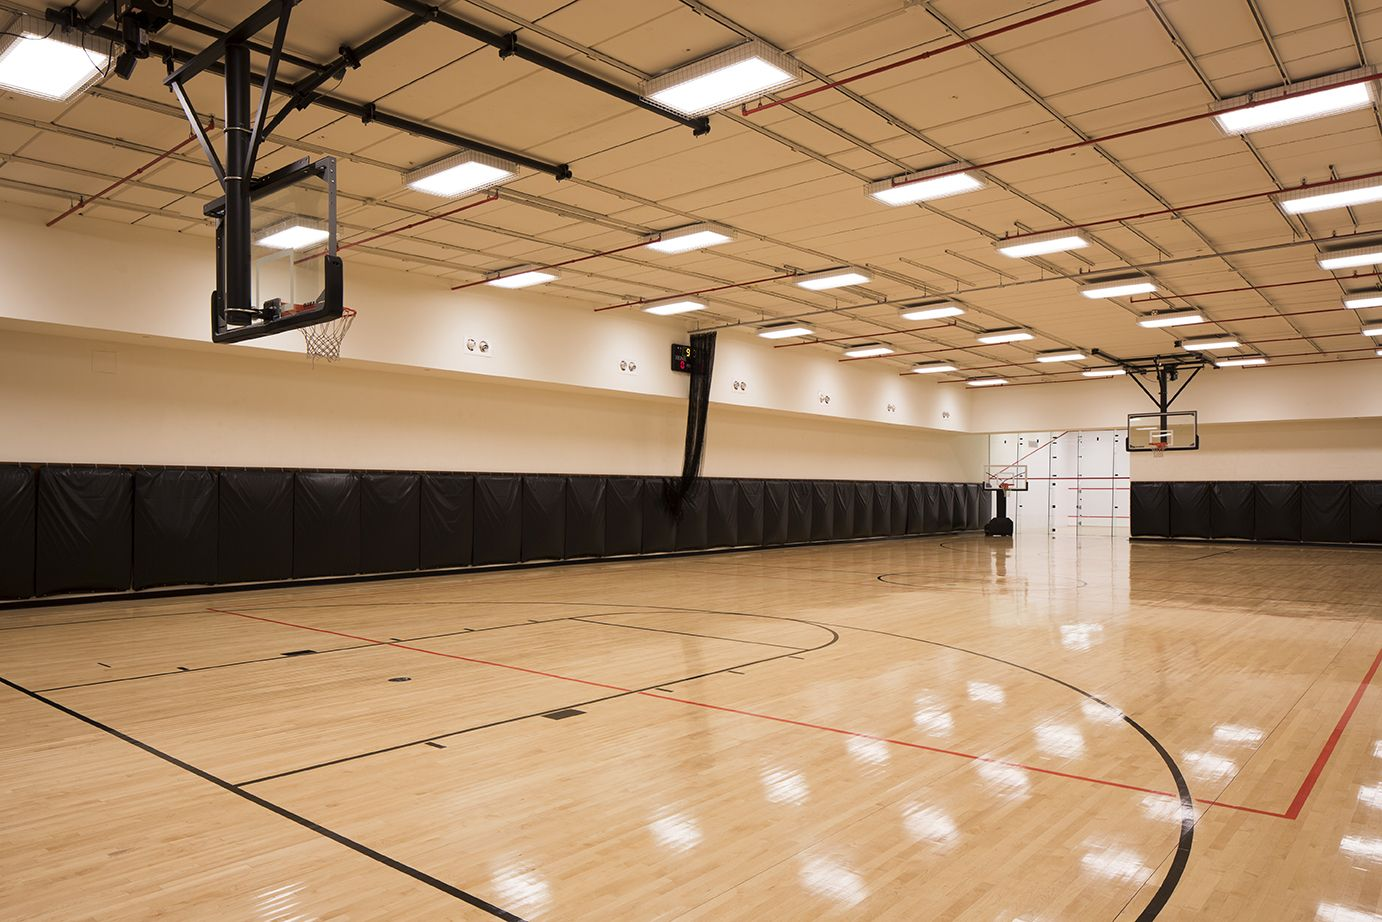 Full size indoor basketball court | The Ashley | Pinterest | Indoor ...